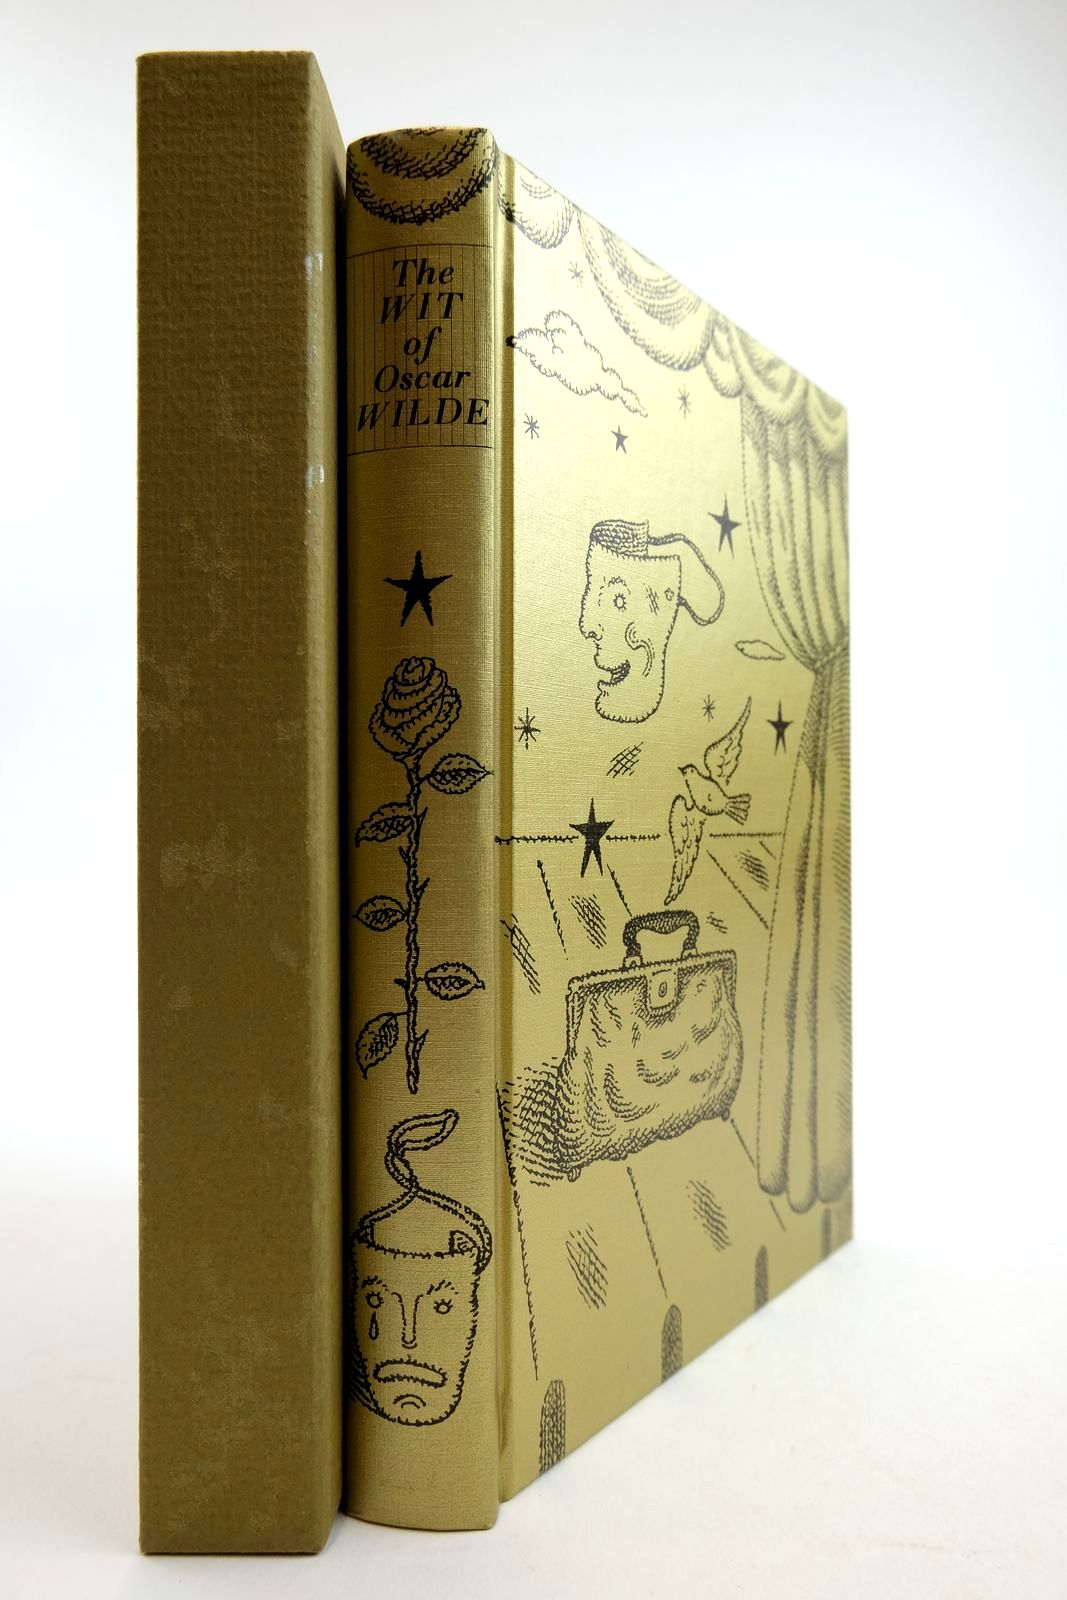 Photo of THE WIT OF OSCAR WILDE written by Wilde, Oscar illustrated by Beck, Ian Archie published by Folio Society (STOCK CODE: 2134271)  for sale by Stella & Rose's Books